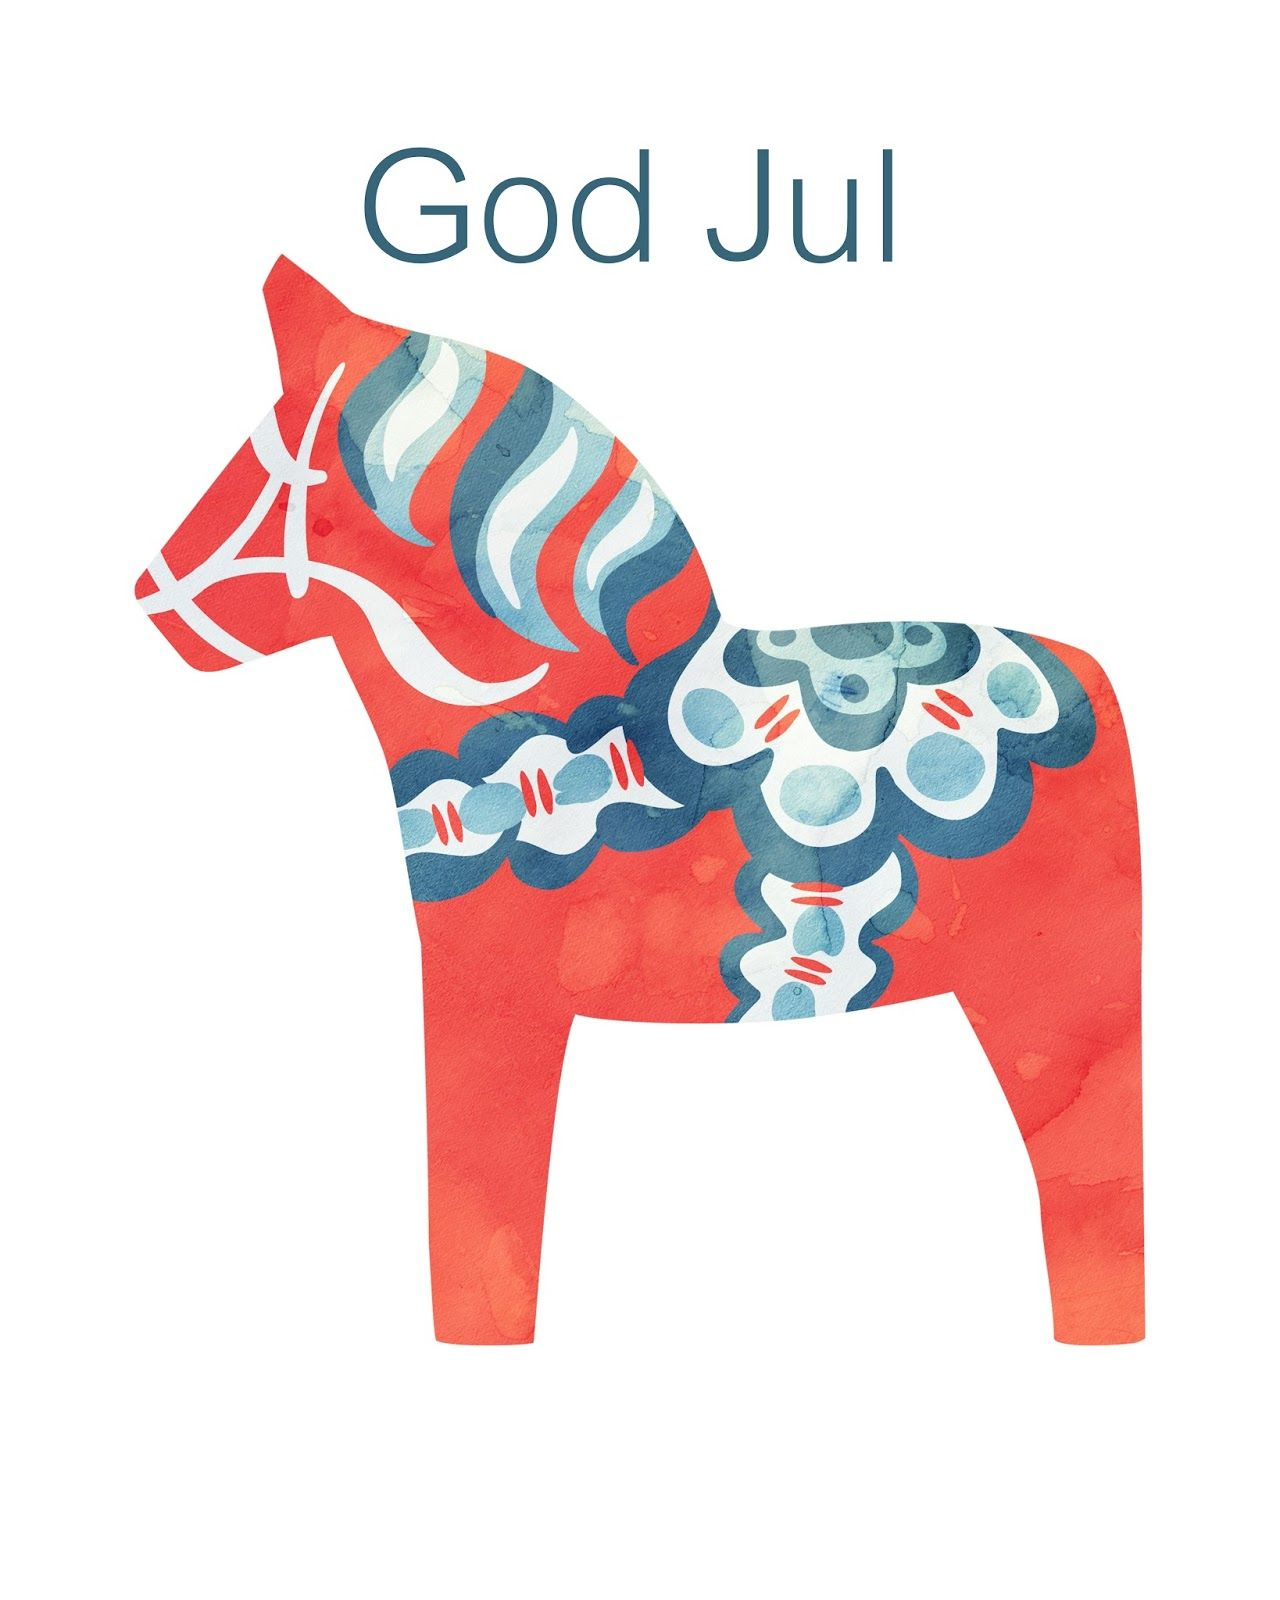 I Ve Been So Excited To Share Our Christmas Decorations With You All We Were Busy This Weekend Bringing Everythi Nordic Christmas Swedish Christmas Dala Horse